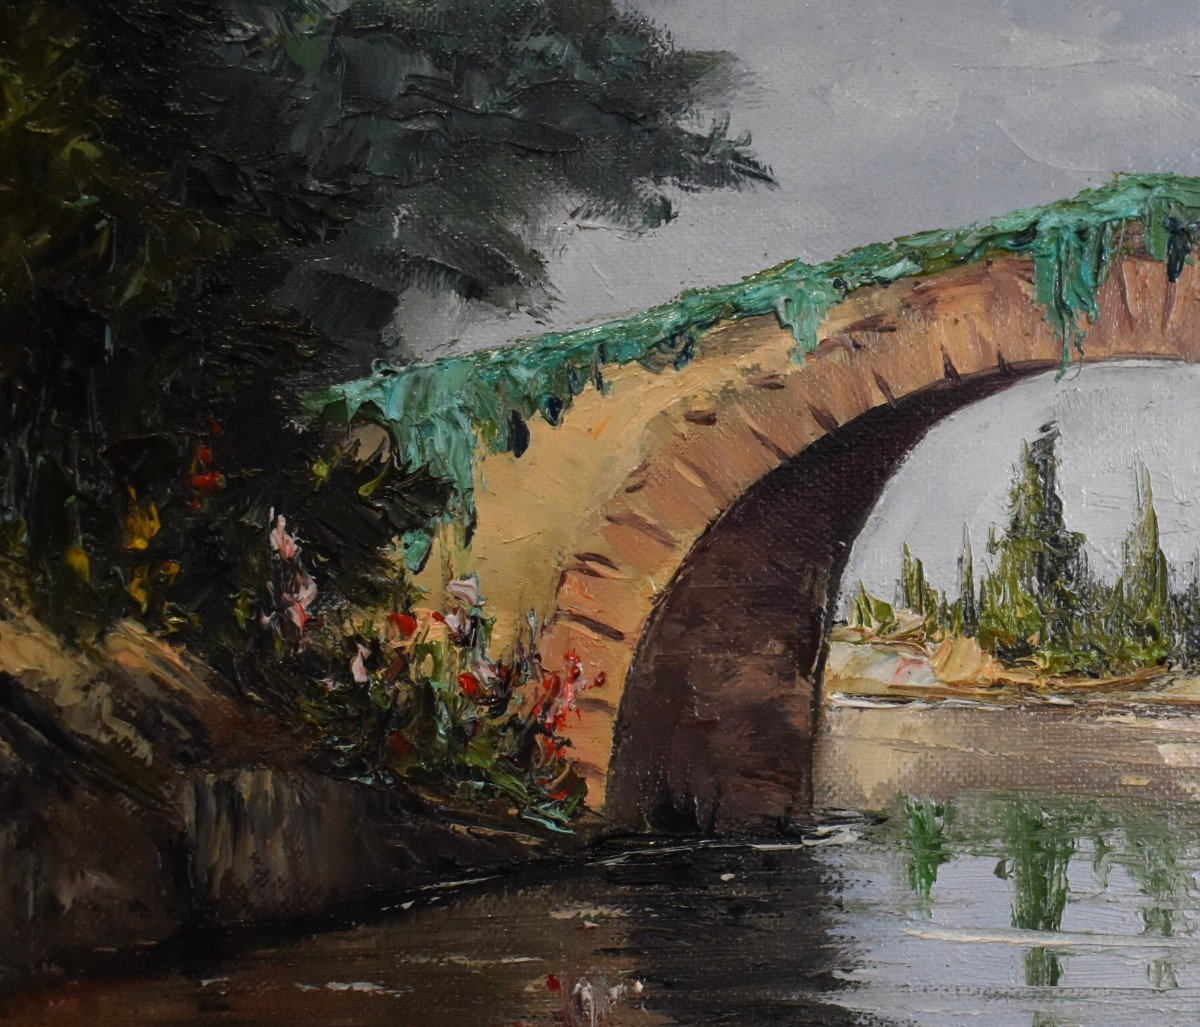 Framed Painting, Oil On Canvas, Bridge And River Landscape.-photo-1